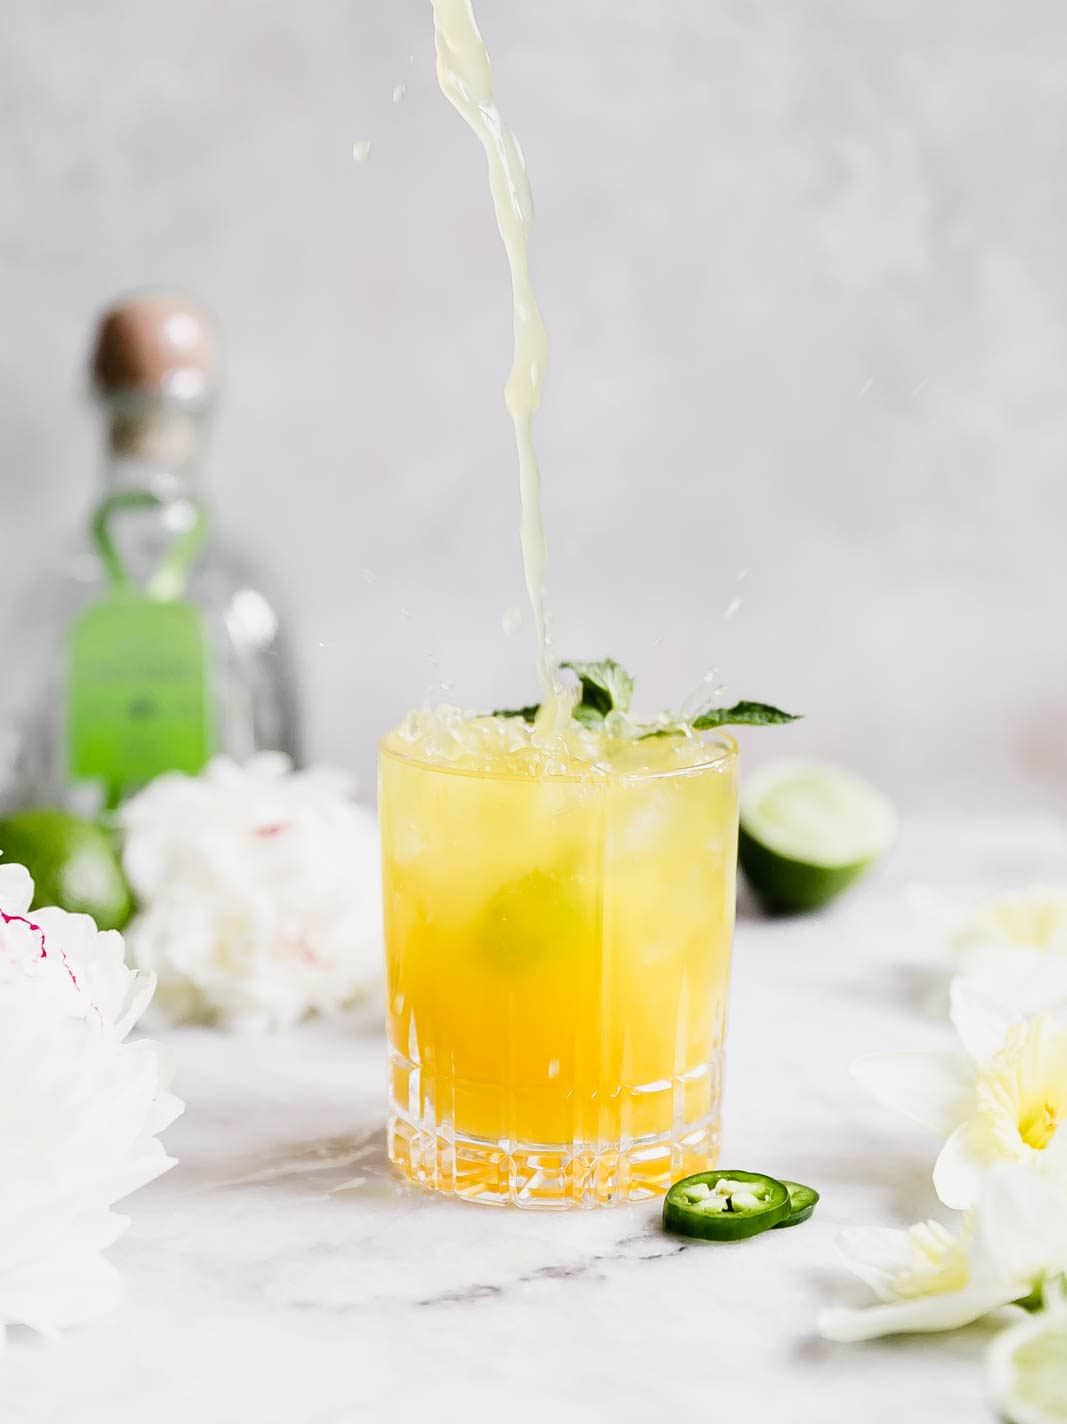 A ridiculously refreshing Spicy Passionfruit Margarita made with a homemade spicy passionfruit syrup, orange liqueur, and tequila